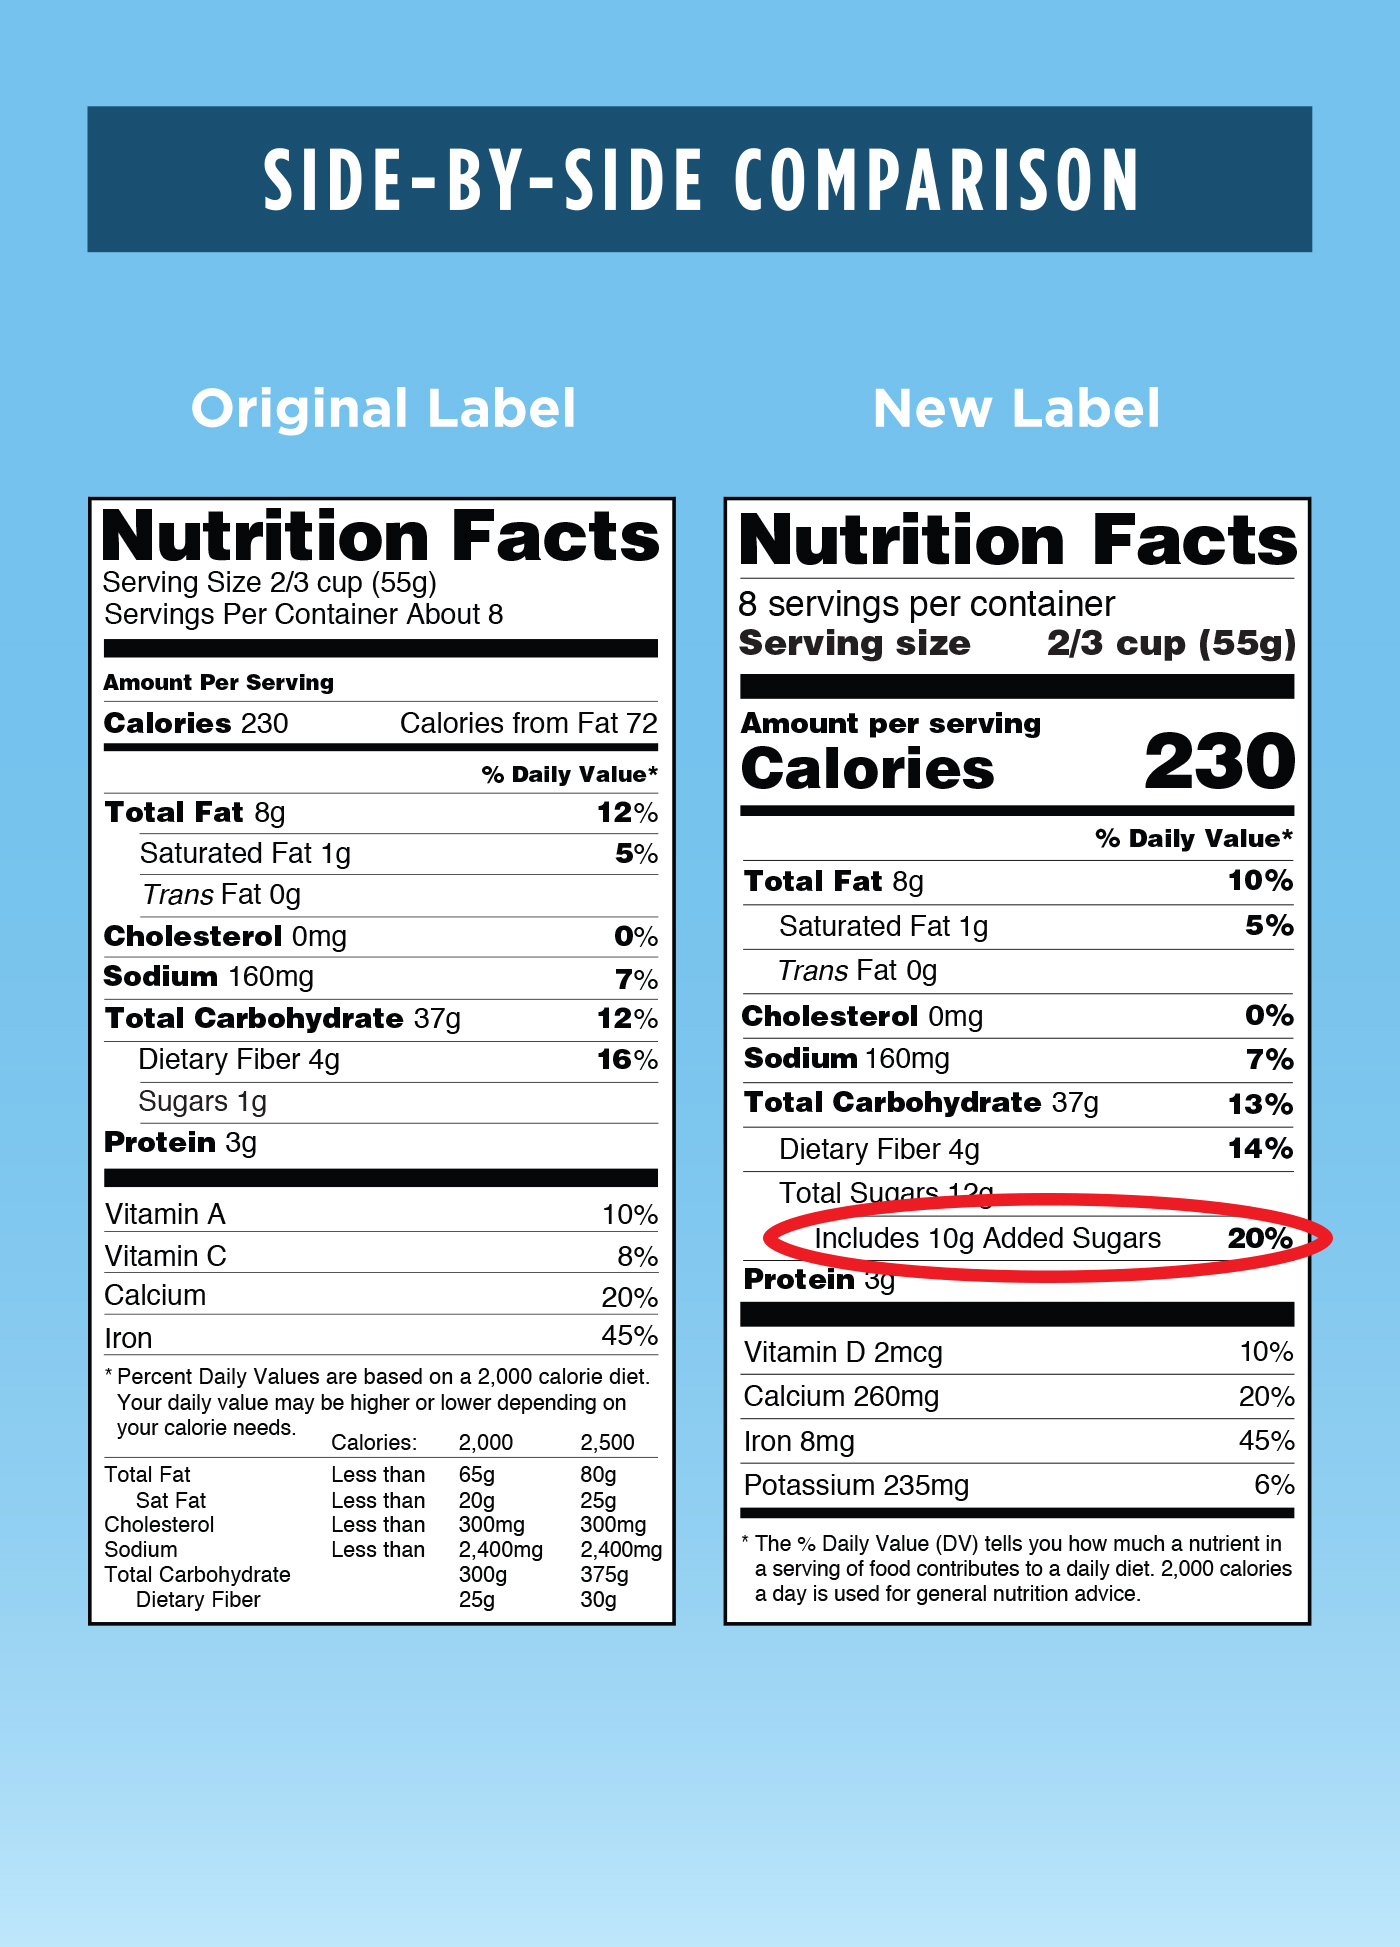 Original food labels only included total sugar content which lumps the amount of natural sugars and added sugars into one number. This was confusing because in order to make informed decisions about food products we are especially interested in knowing the added sugar content, not just the total amount of sugar. Remember most people aren't going to worry about natural sugar intake*, but we want to limit our added sugar intake.  ***If you have diabetes you do need to monitor all sugar intake, see an RDN for more information.